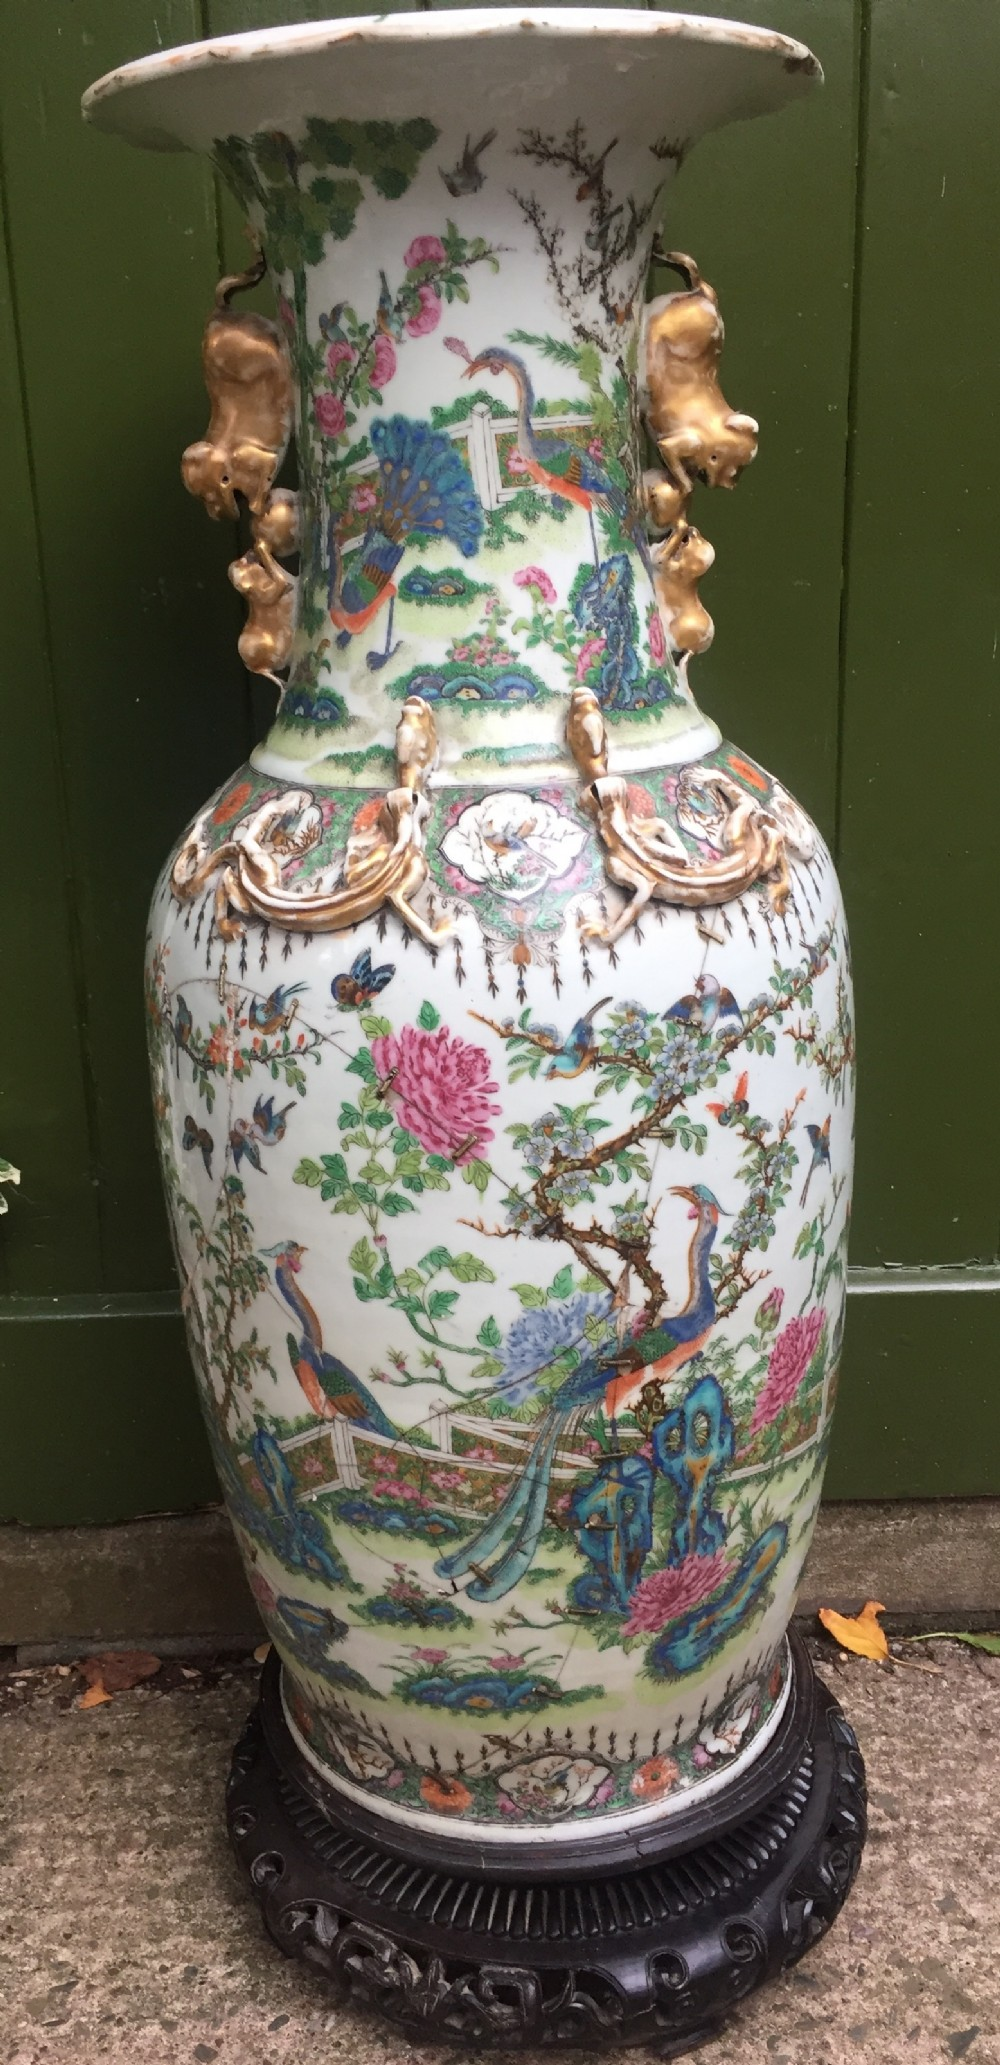 large scale c19th chinese cantonese porcelain enamel decorated vase on hardwood stand in repaired 'country house' condition